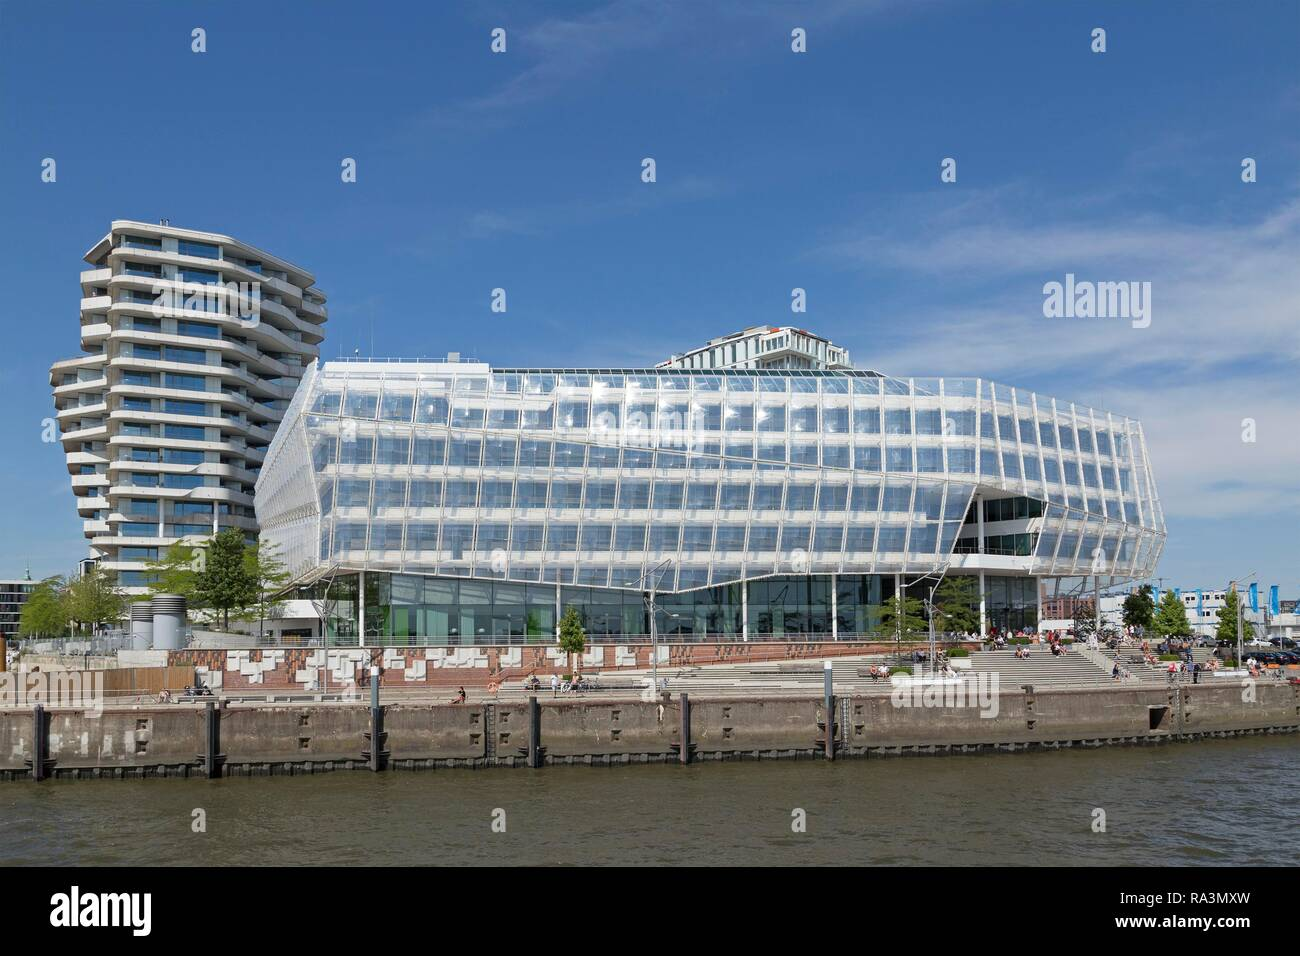 Marco Polo Tower and Unilever House, HafenCity, Hamburg, Germany - Stock Image